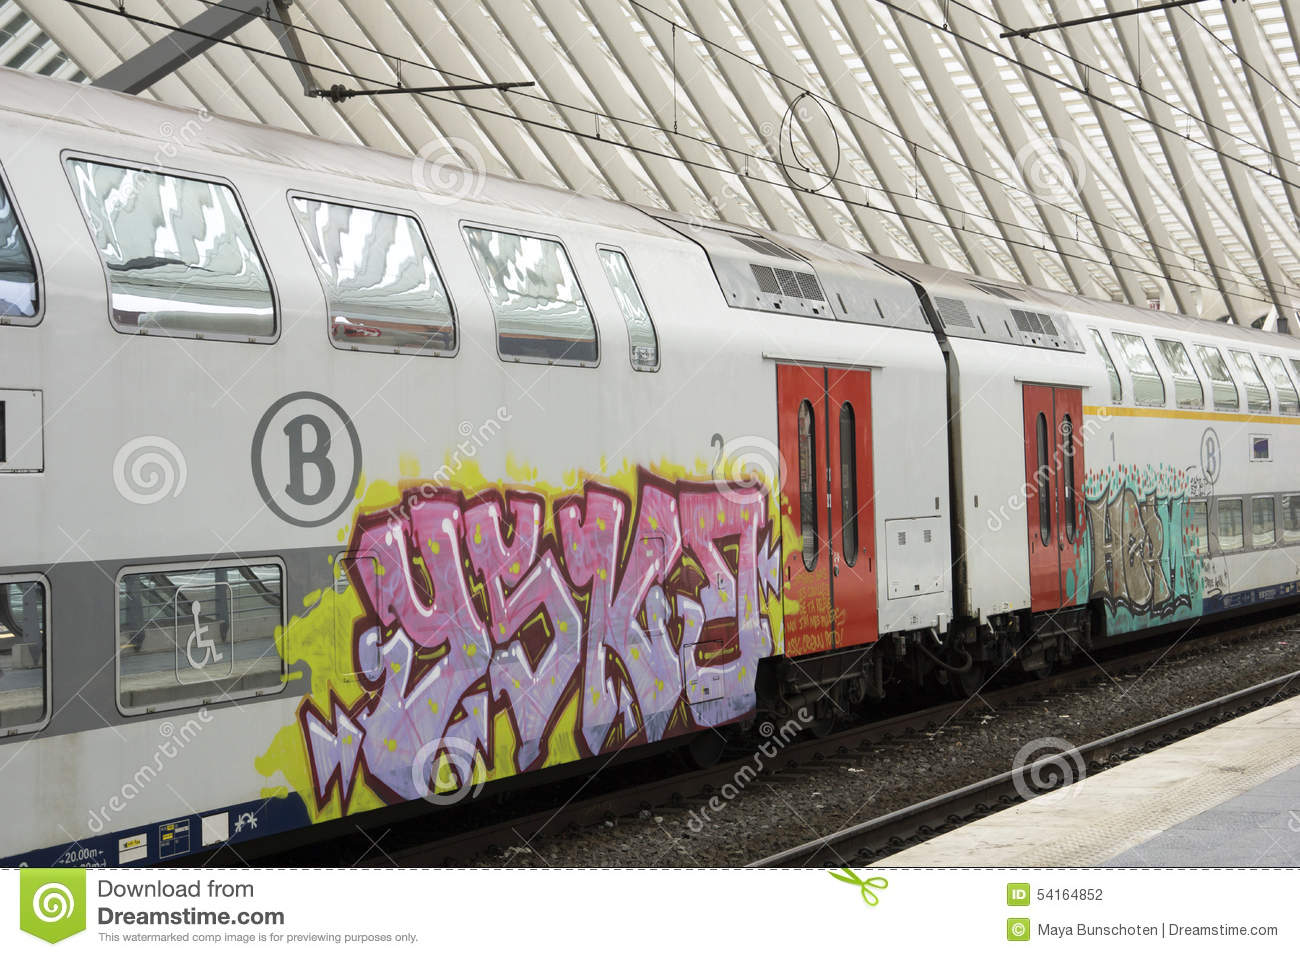 Liege Clipart Train With Graffiti Editorial Photography Image 54164852